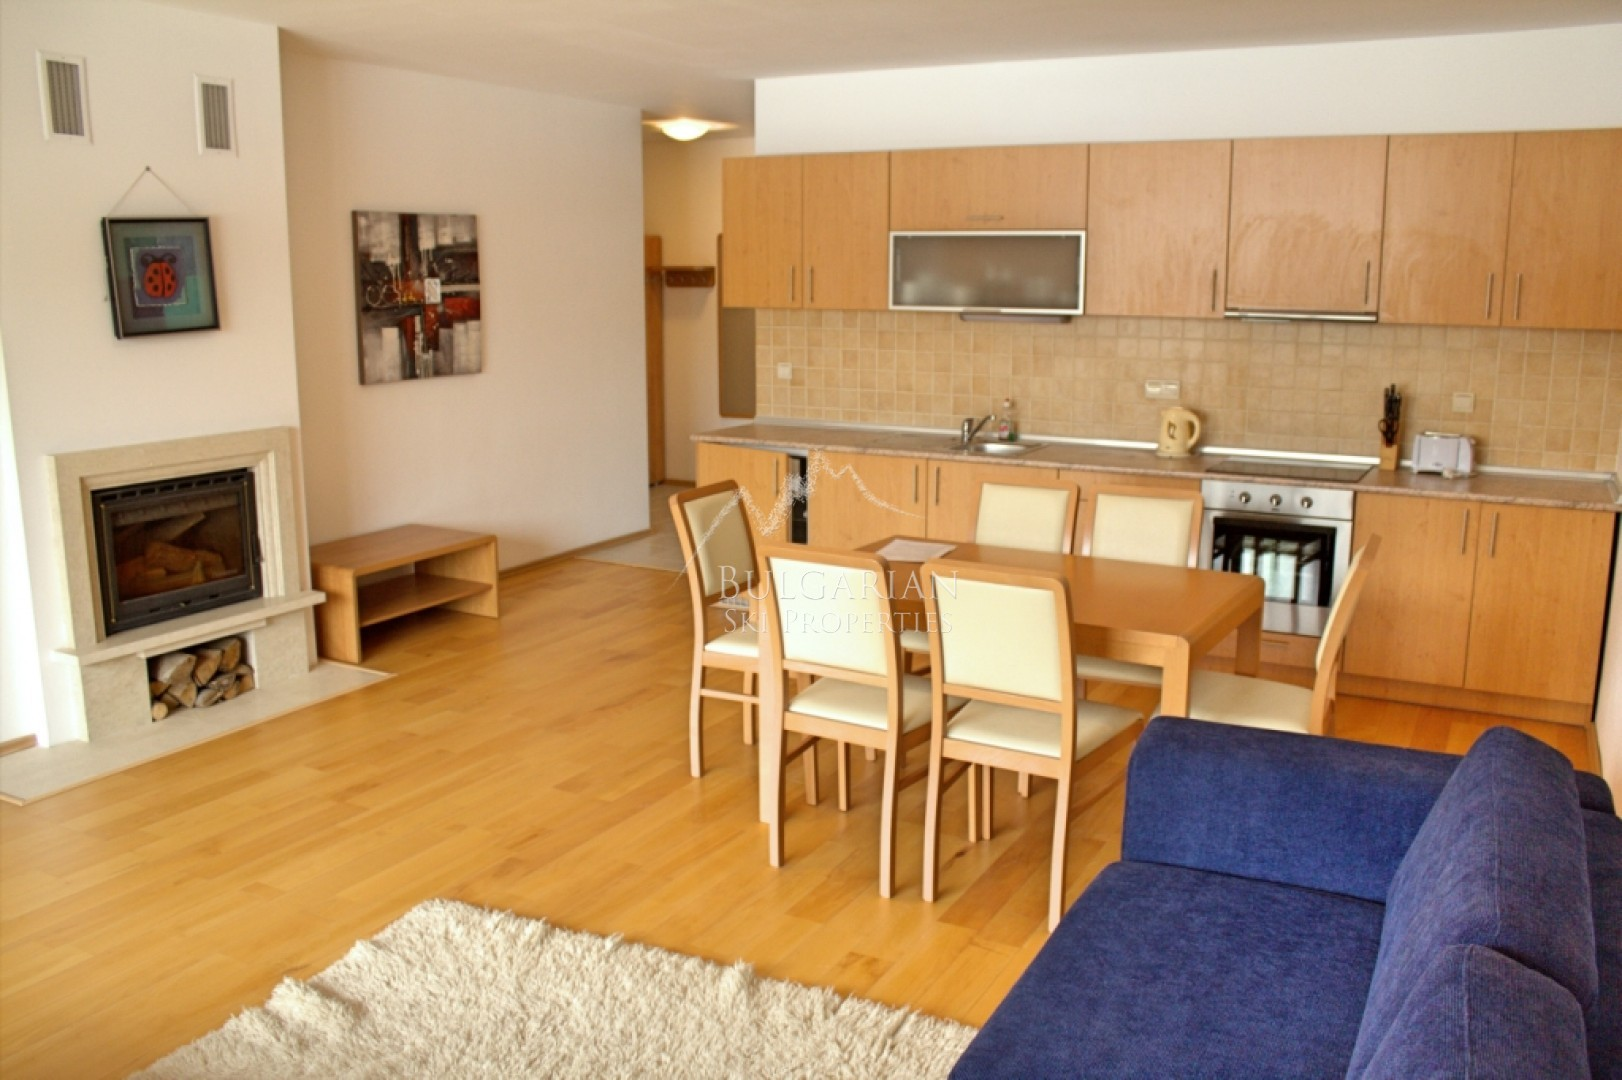 Bansko, Pirin Lodge complex: spacious two bedroom apartment with fireplace for sale